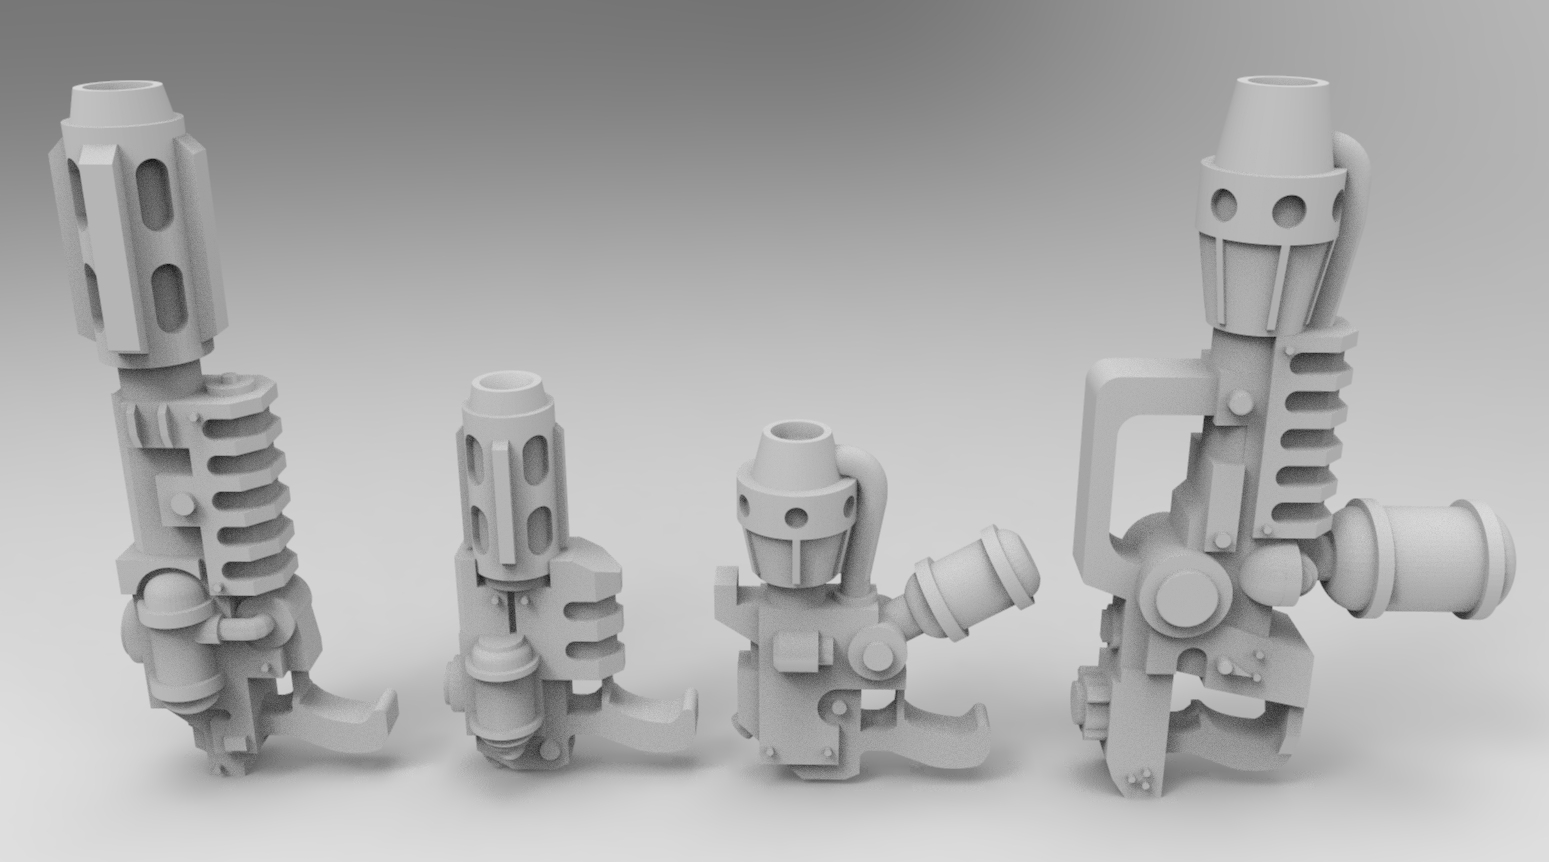 untitled.74.jpg Download free STL file Old Timey Interstellar Army & Jarhead Cooking Appliances • 3D printer object, Mkhand_Industries